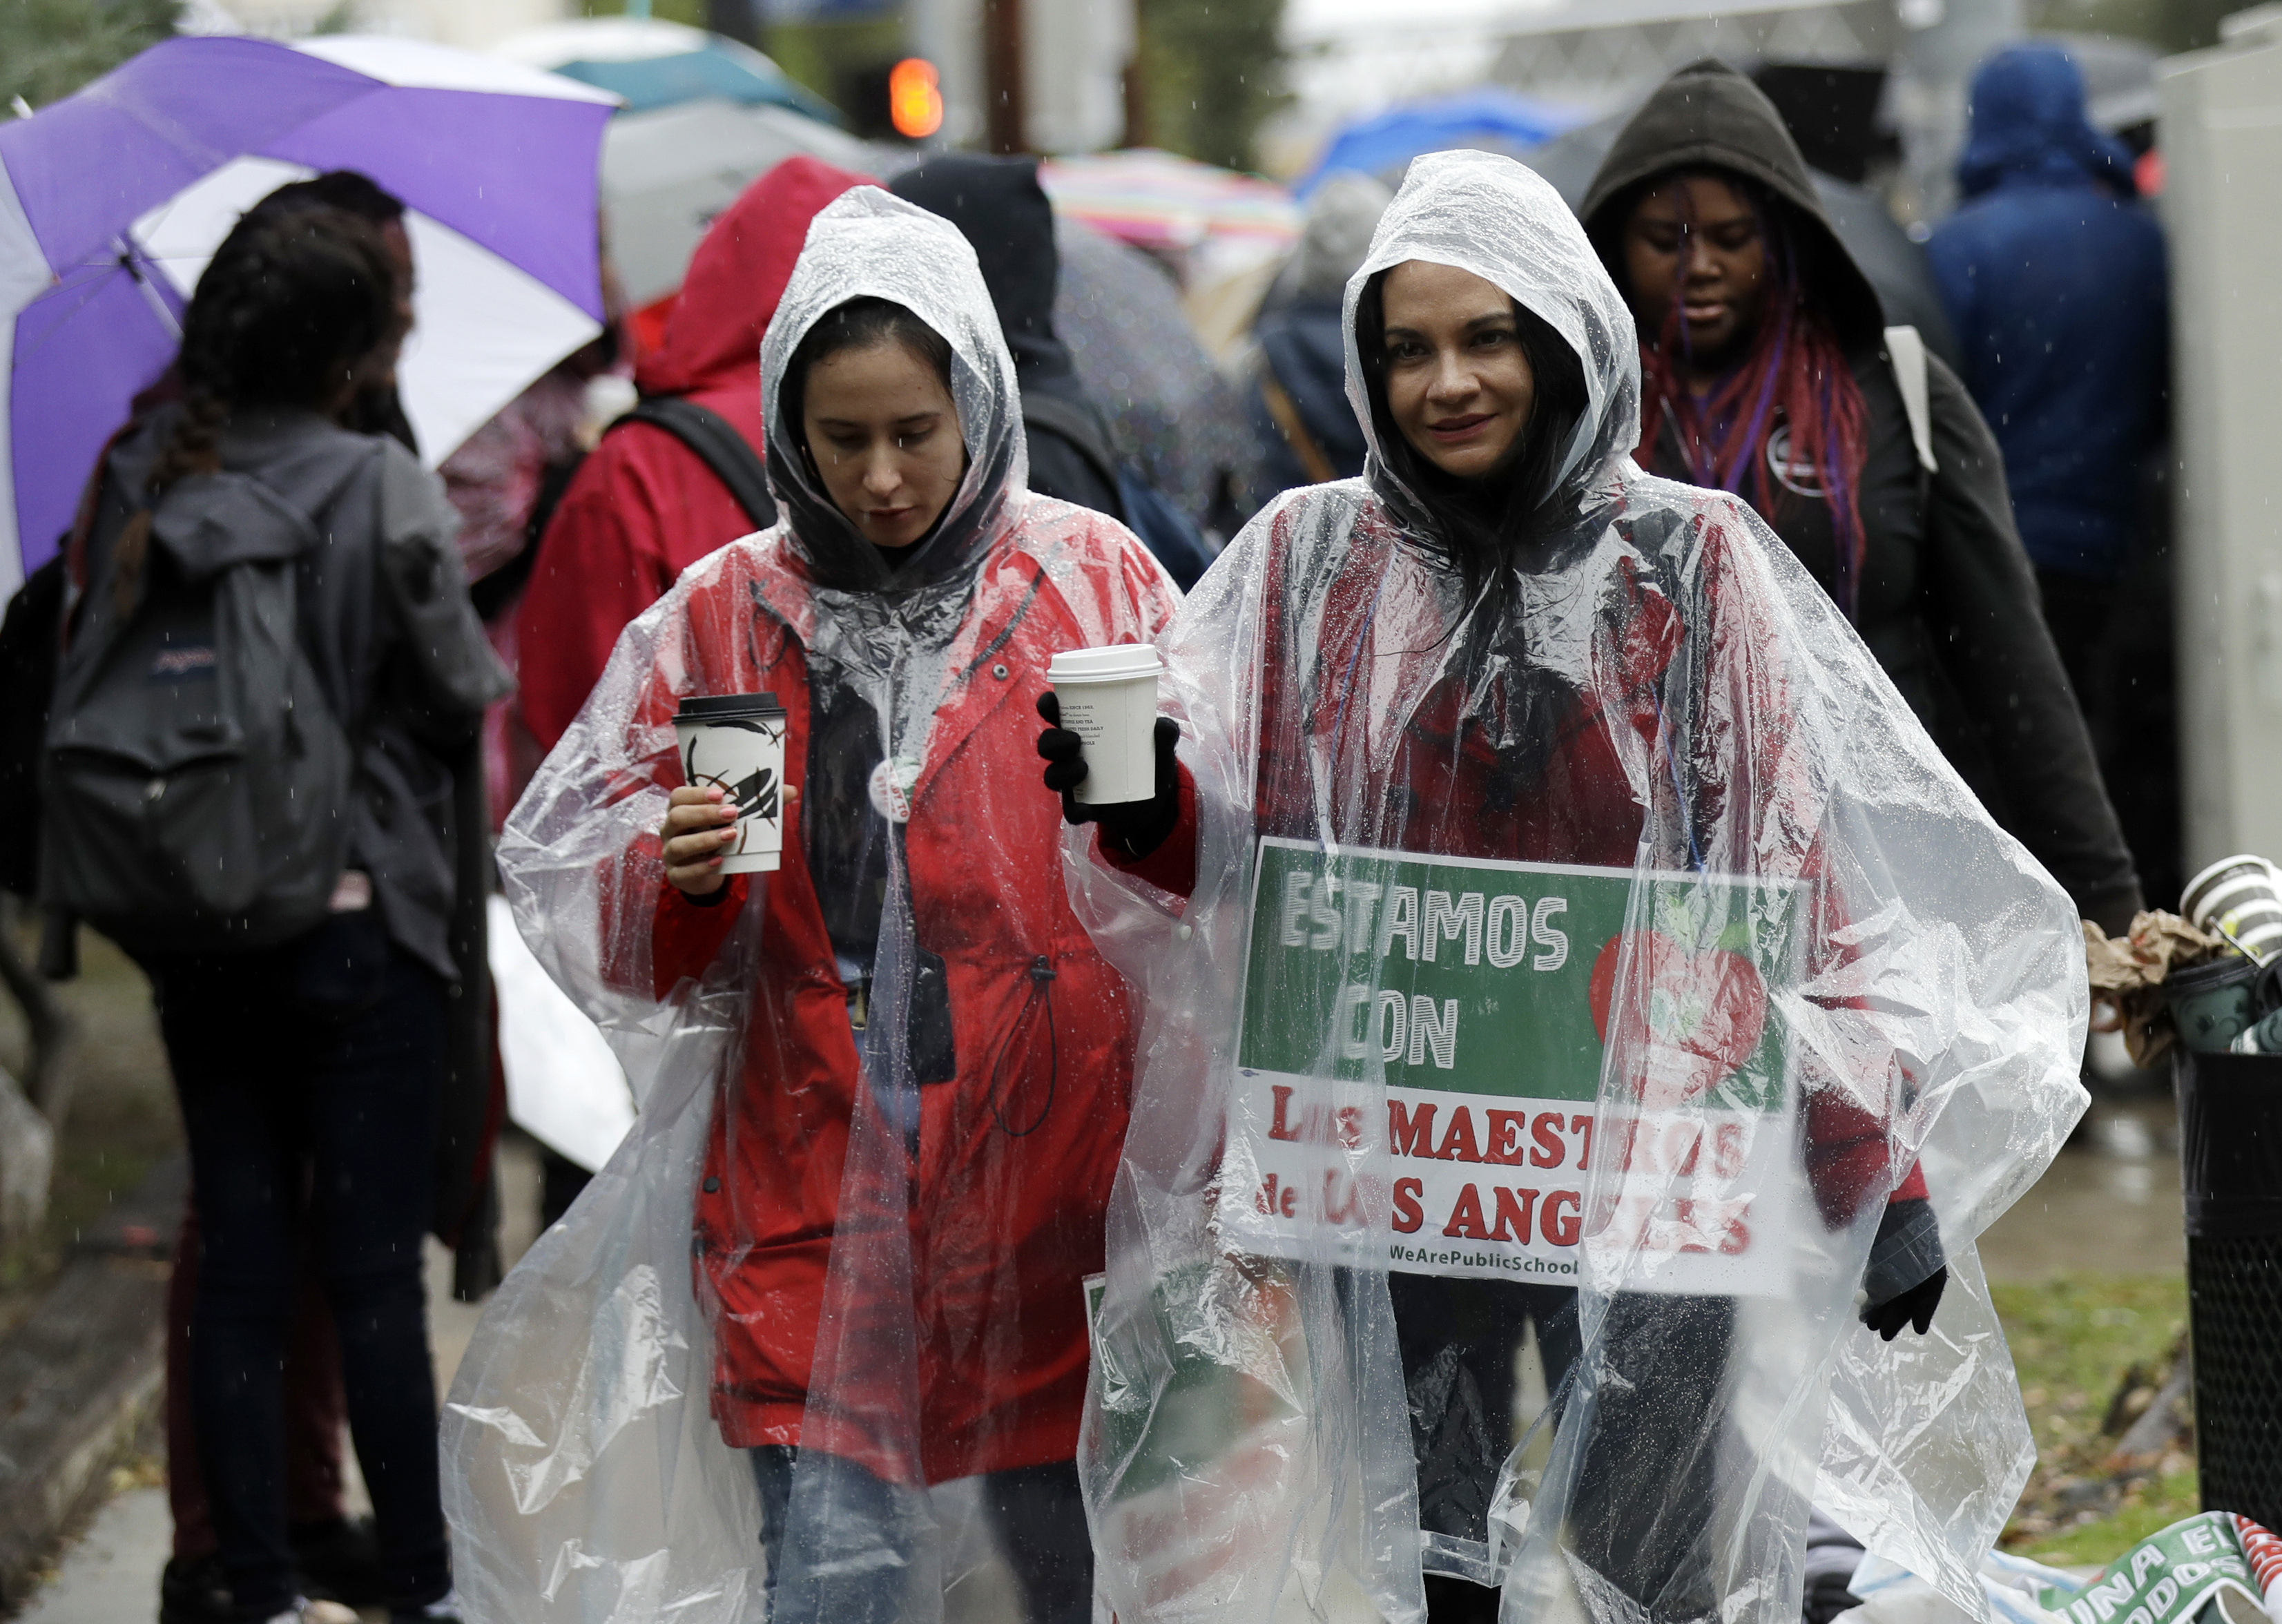 Spanish teachers Natalie Ardagna, right, and Jenny Padilla cover themselves from the rain as they protest outside of North Hollywood High School Tuesday, Jan. 15, 2019, in Los Angeles. Teachers in the huge Los Angeles Unified School District walked picket lines again Tuesday as administrators urged them to return to classrooms and for their union to return to the bargaining table. (AP Photo/Marcio Jose Sanchez)